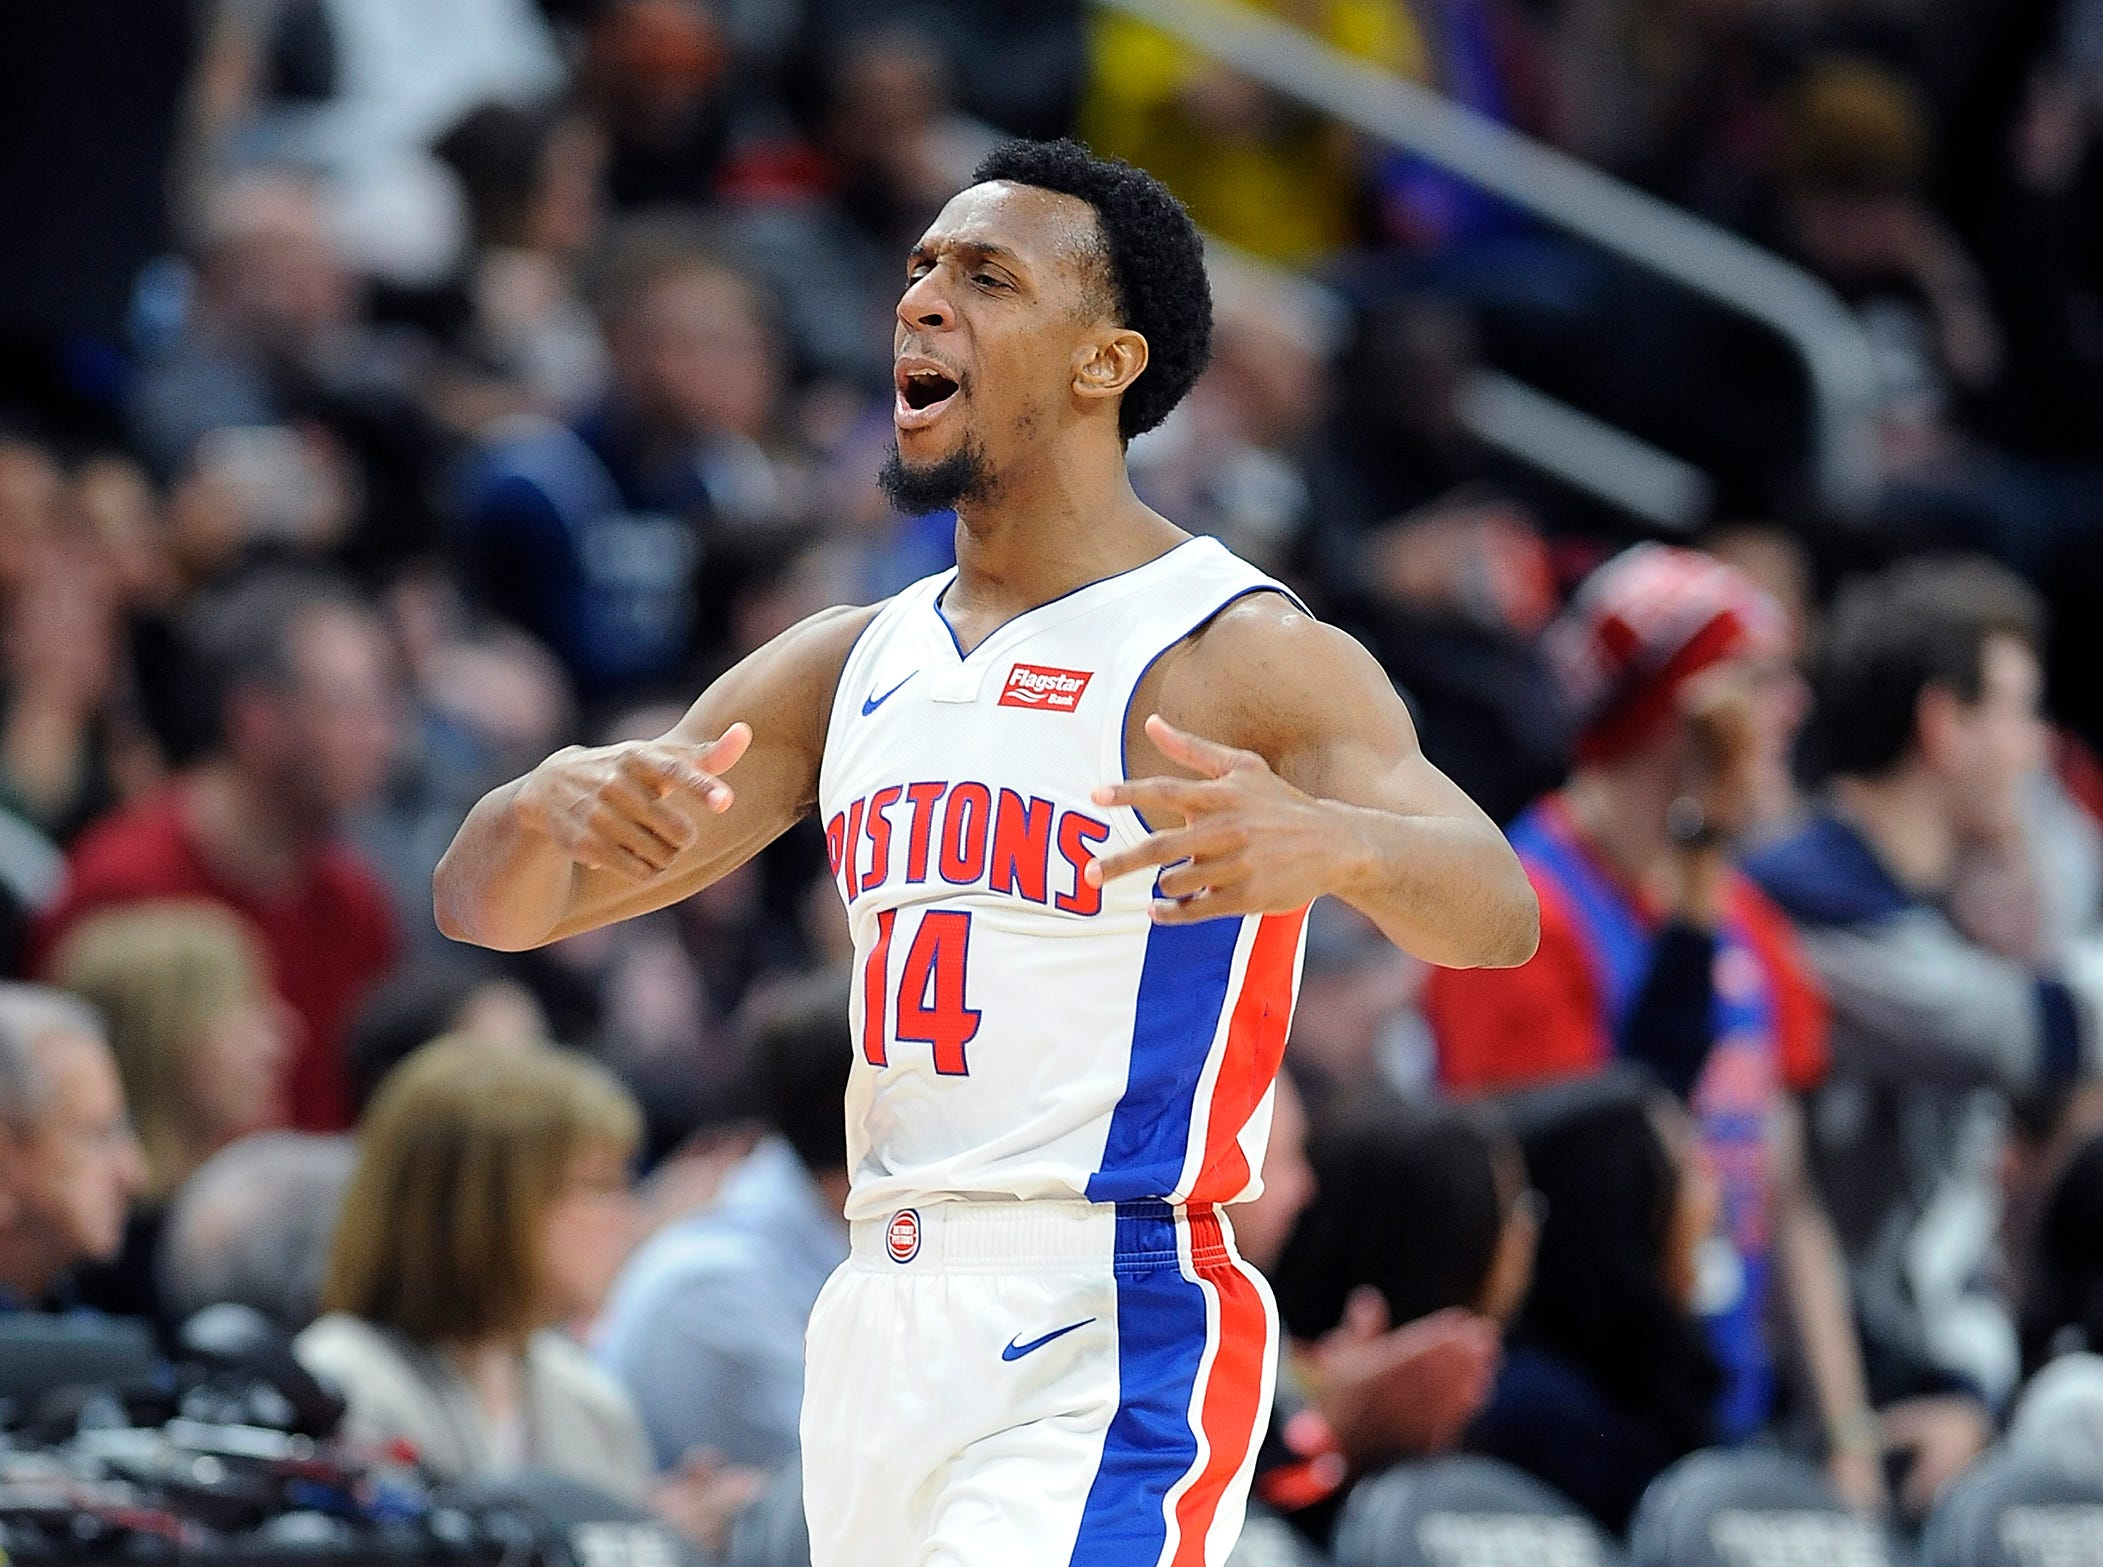 Pistons' Ish Smith celebrate after a basket in the fourth quarter. Smith had 19 points and 5 assist.